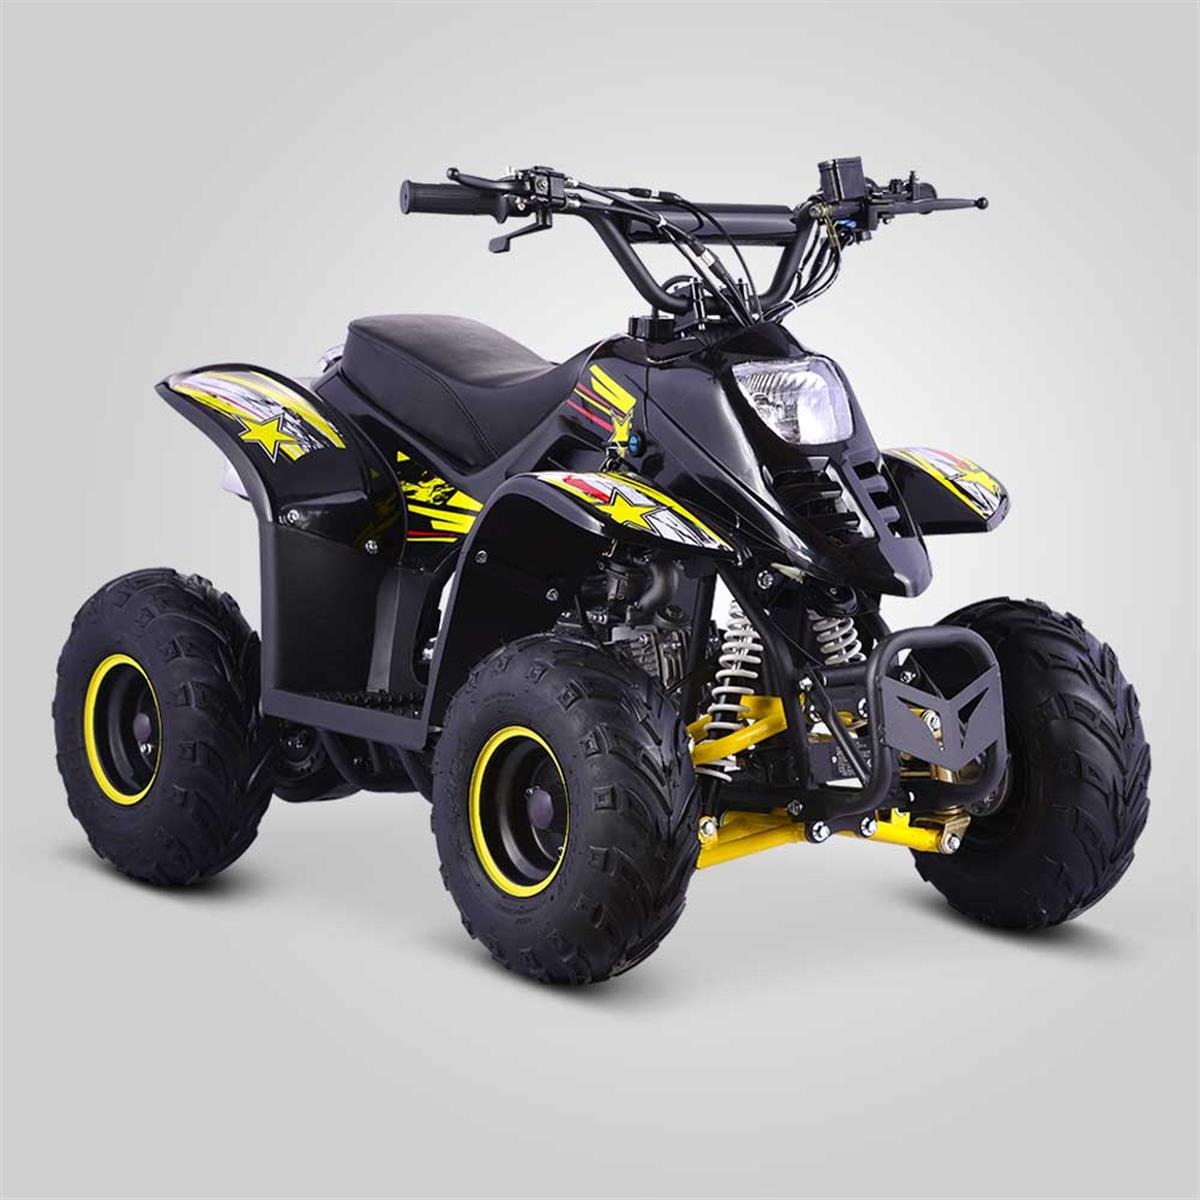 quad de loisirs 90cc diamon jaune smallmx dirt bike. Black Bedroom Furniture Sets. Home Design Ideas